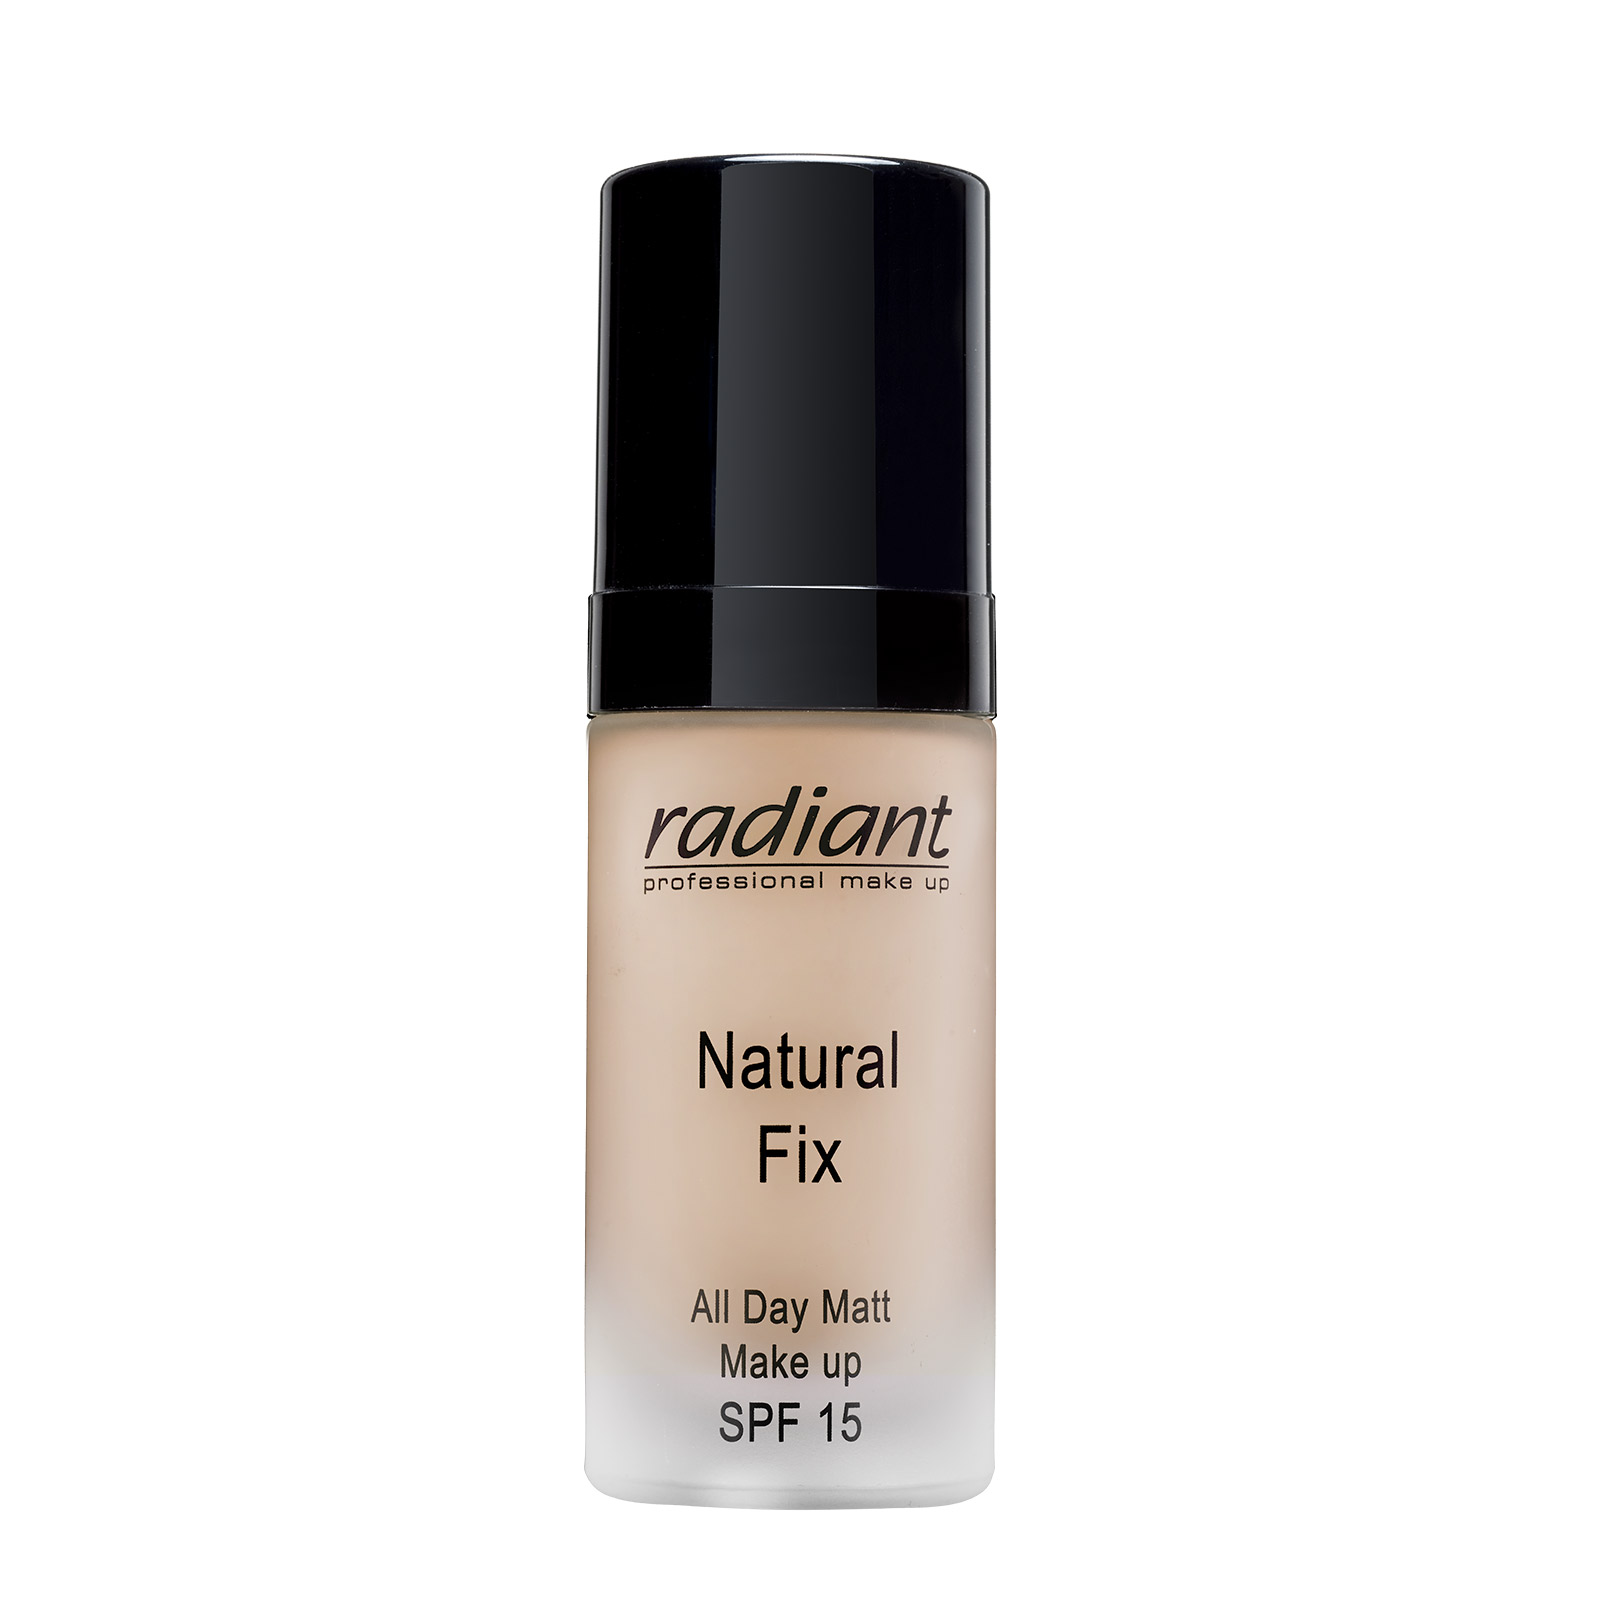 NATURAL FIX ALL DAY MATT MAKE UP SPF 15 (02 Caramel)